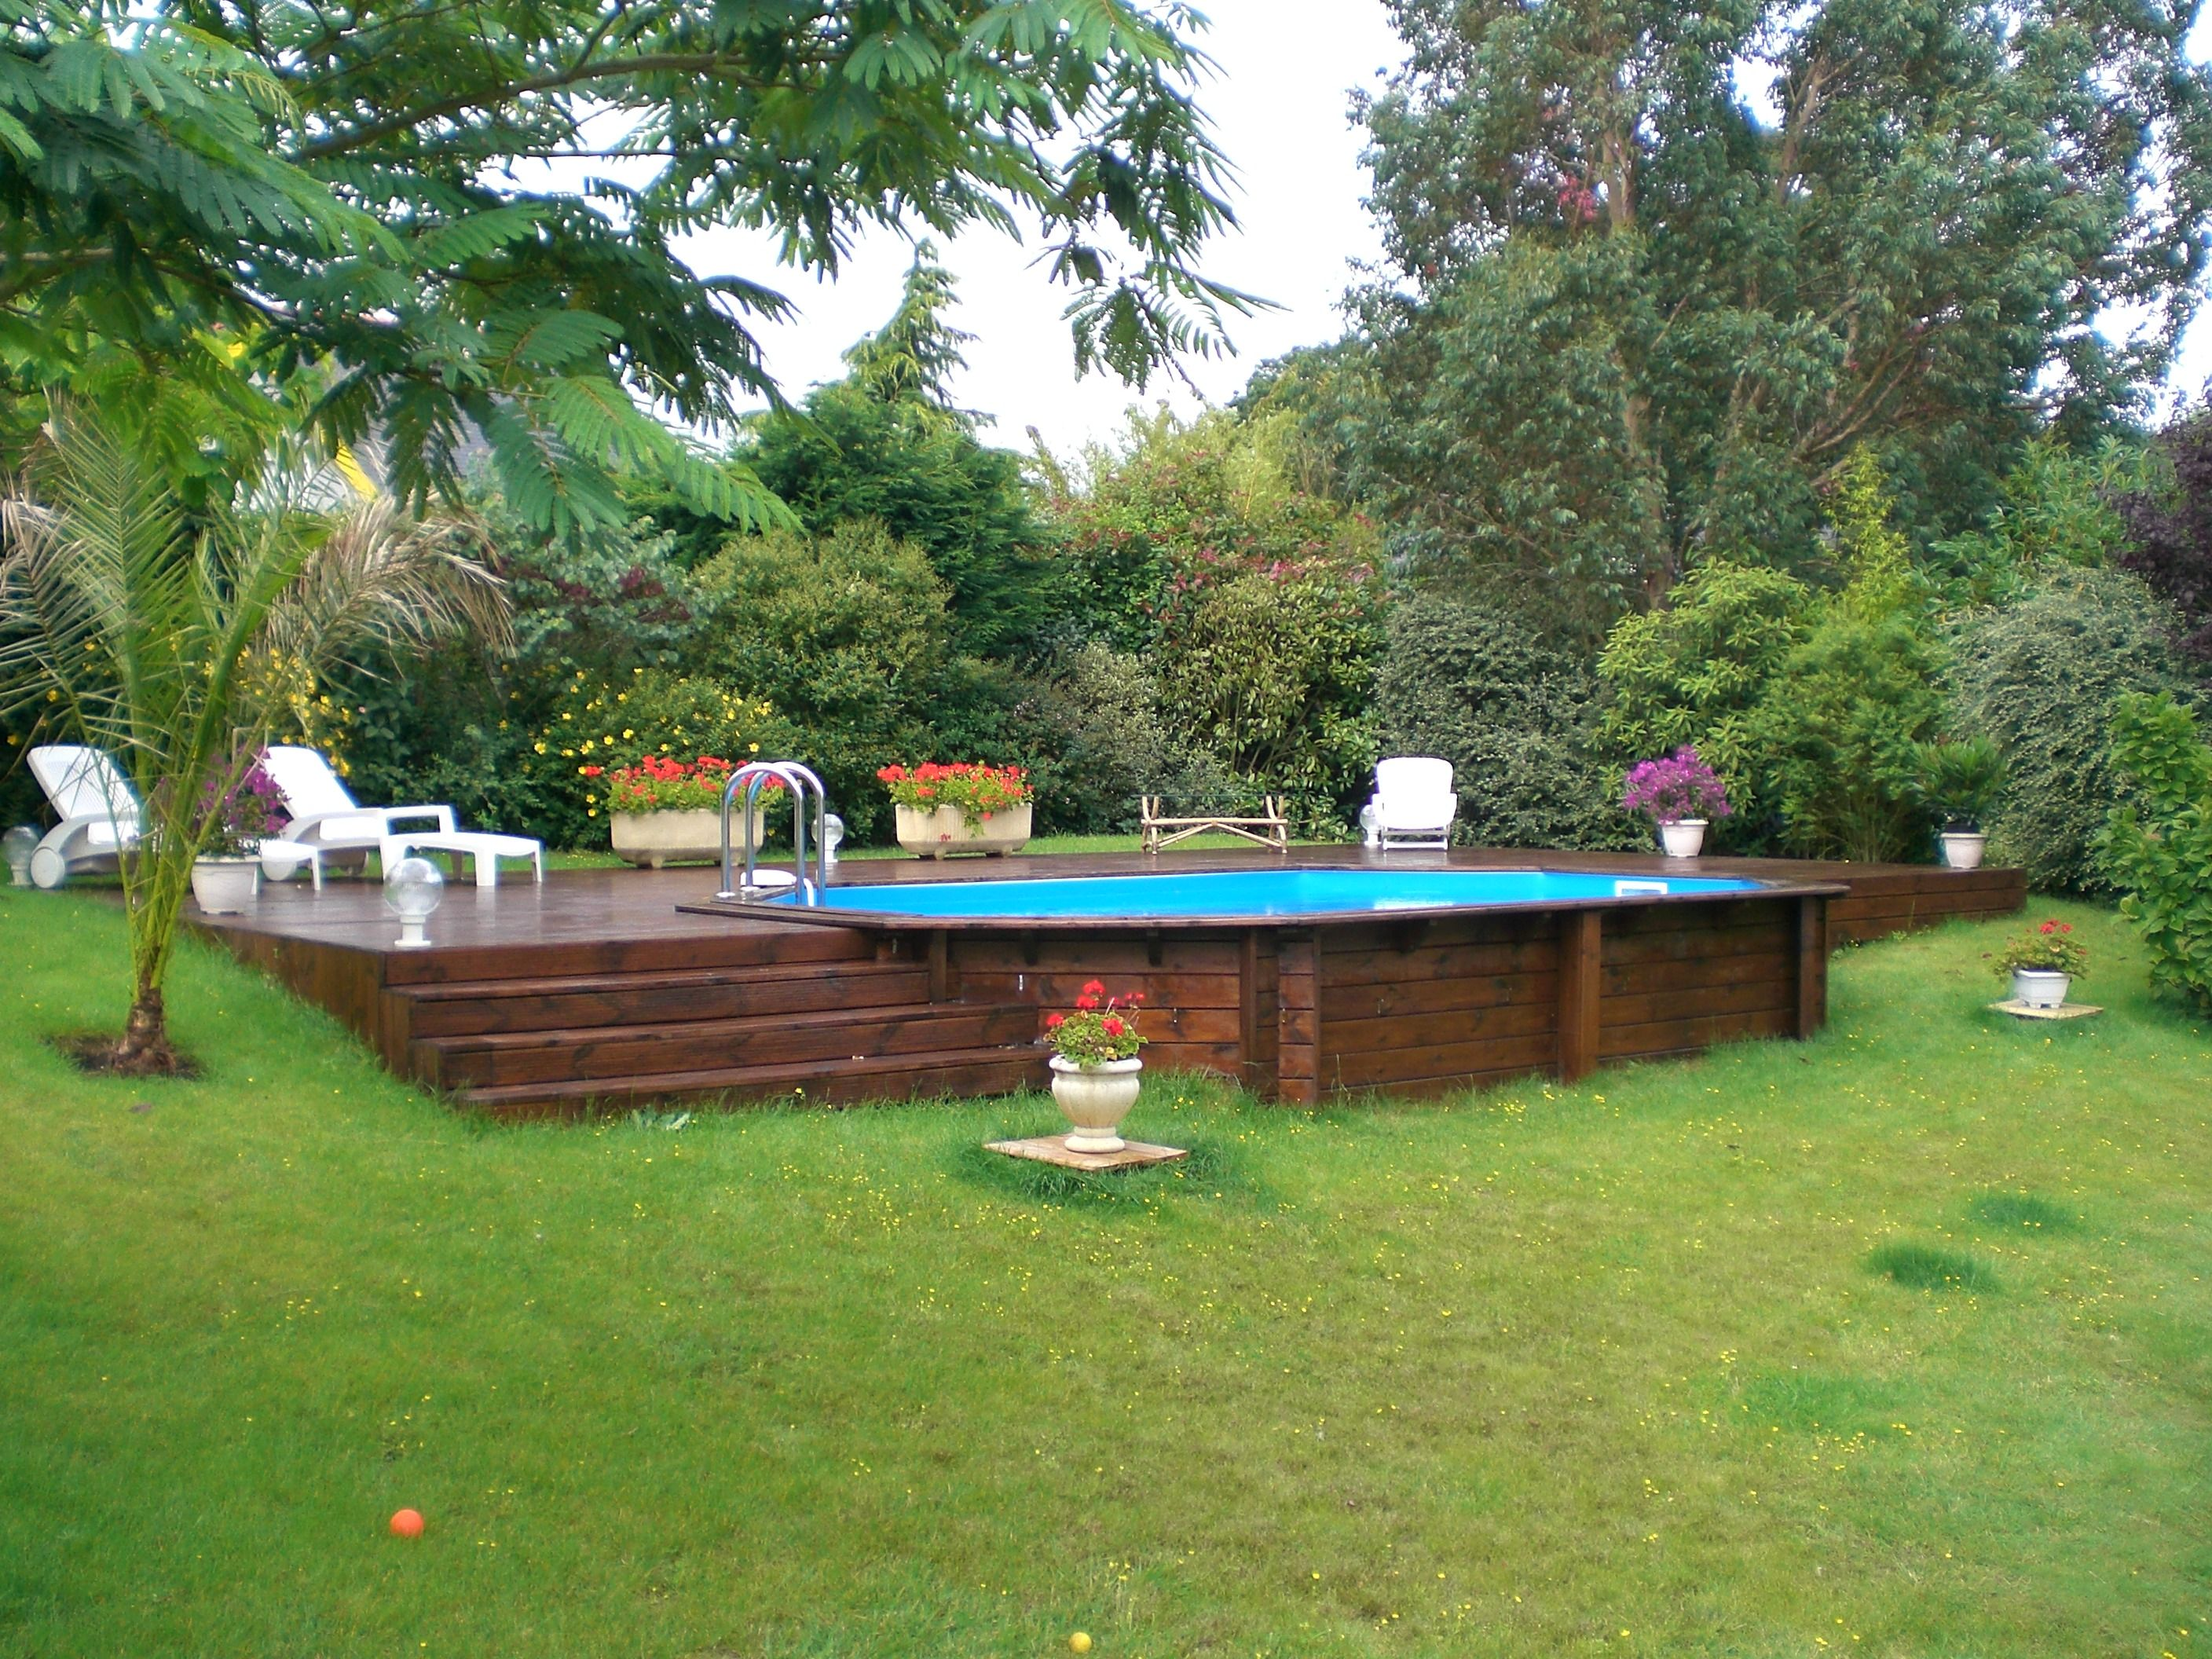 Piscine hors sol en bois semi enterr e sur terrain en for Amenagement piscine hors sol terrasse